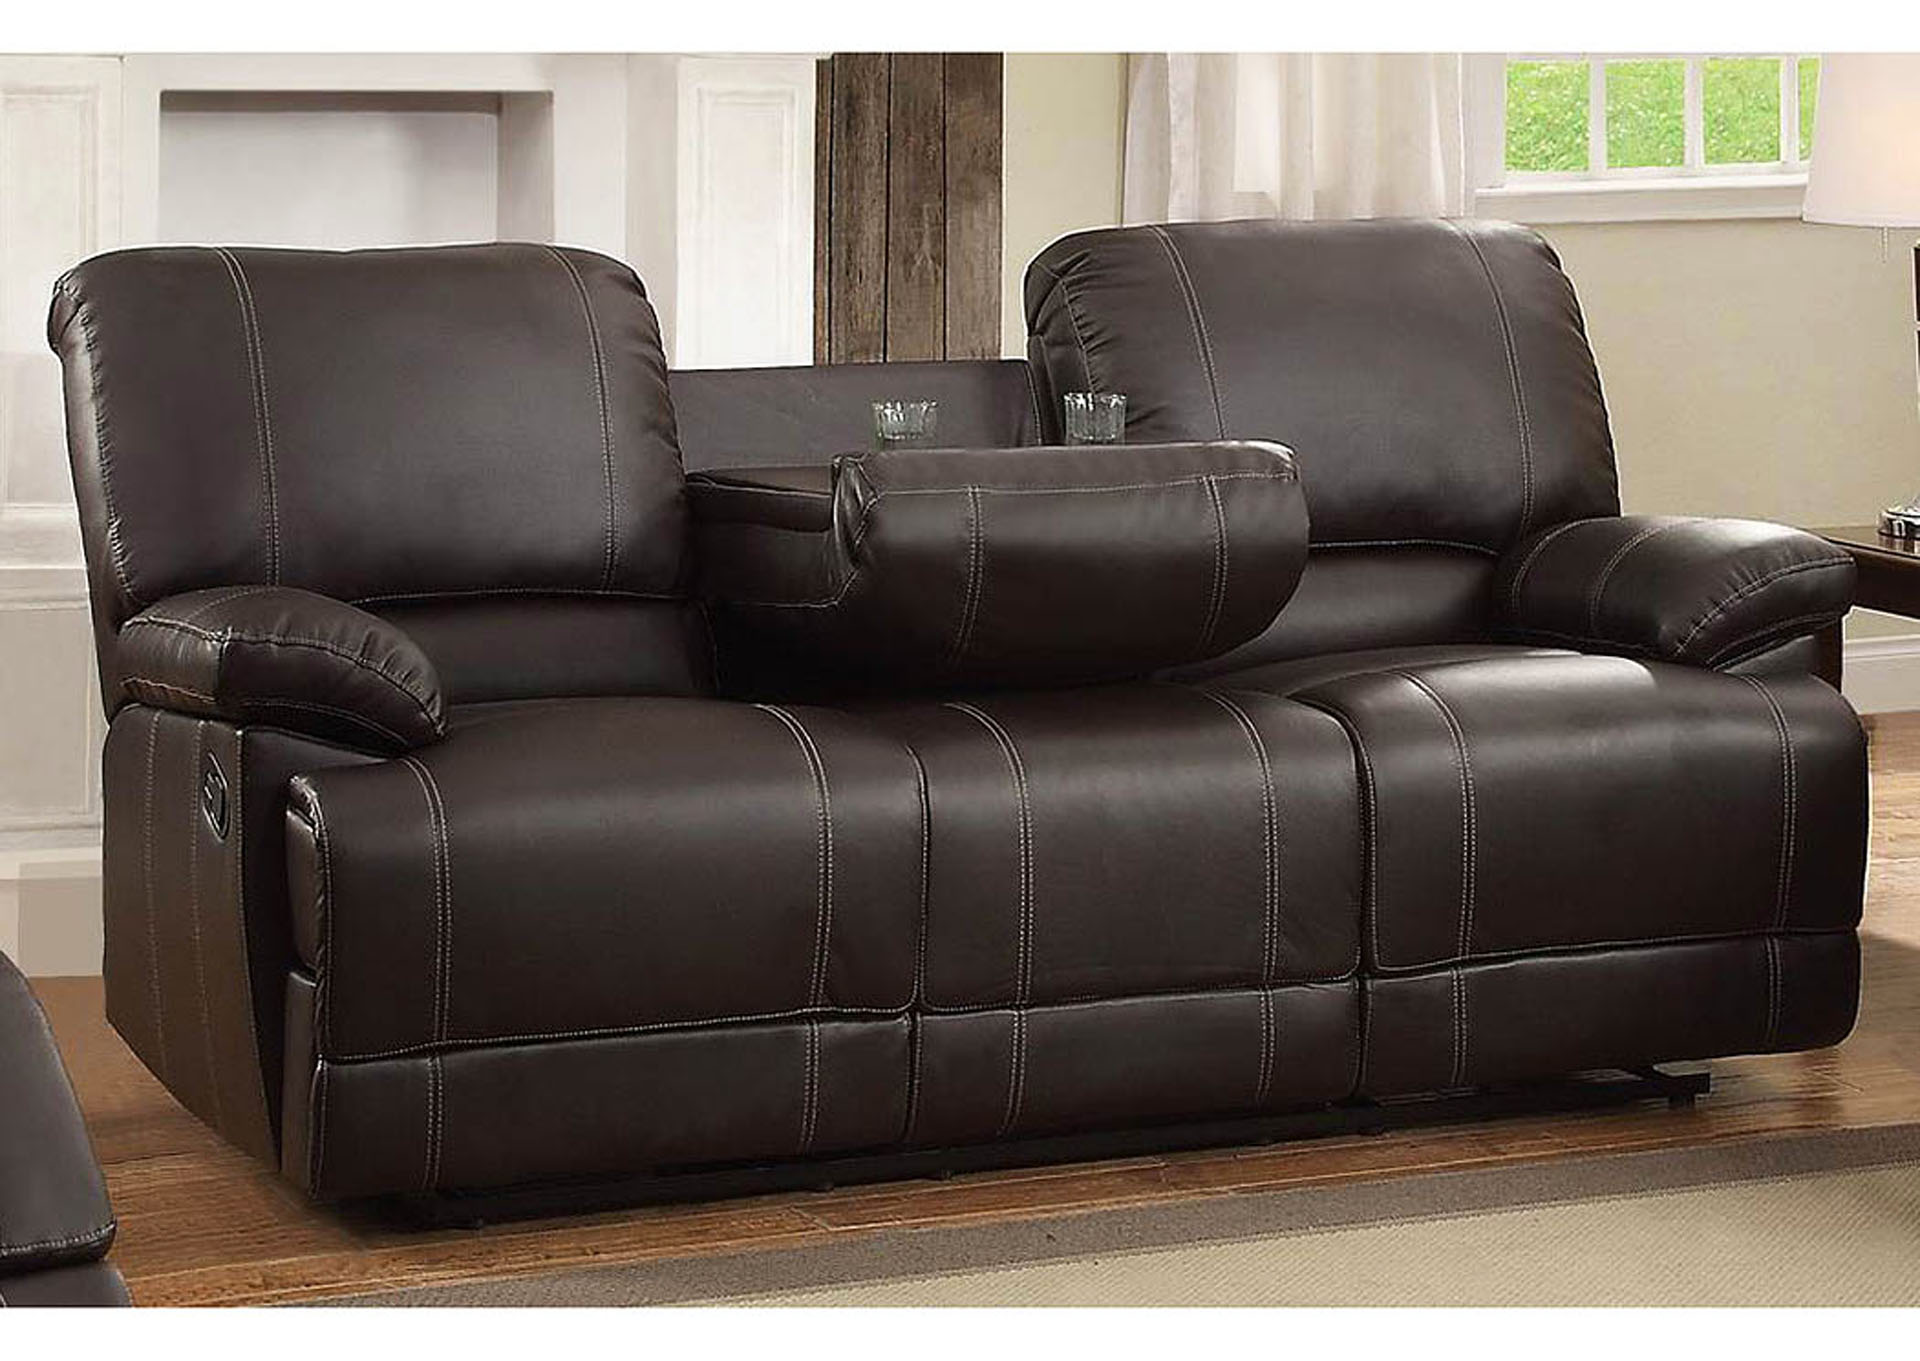 Apex furniture cassville dark brown double reclining sofa w center drop down cup holder for The living room drop in center